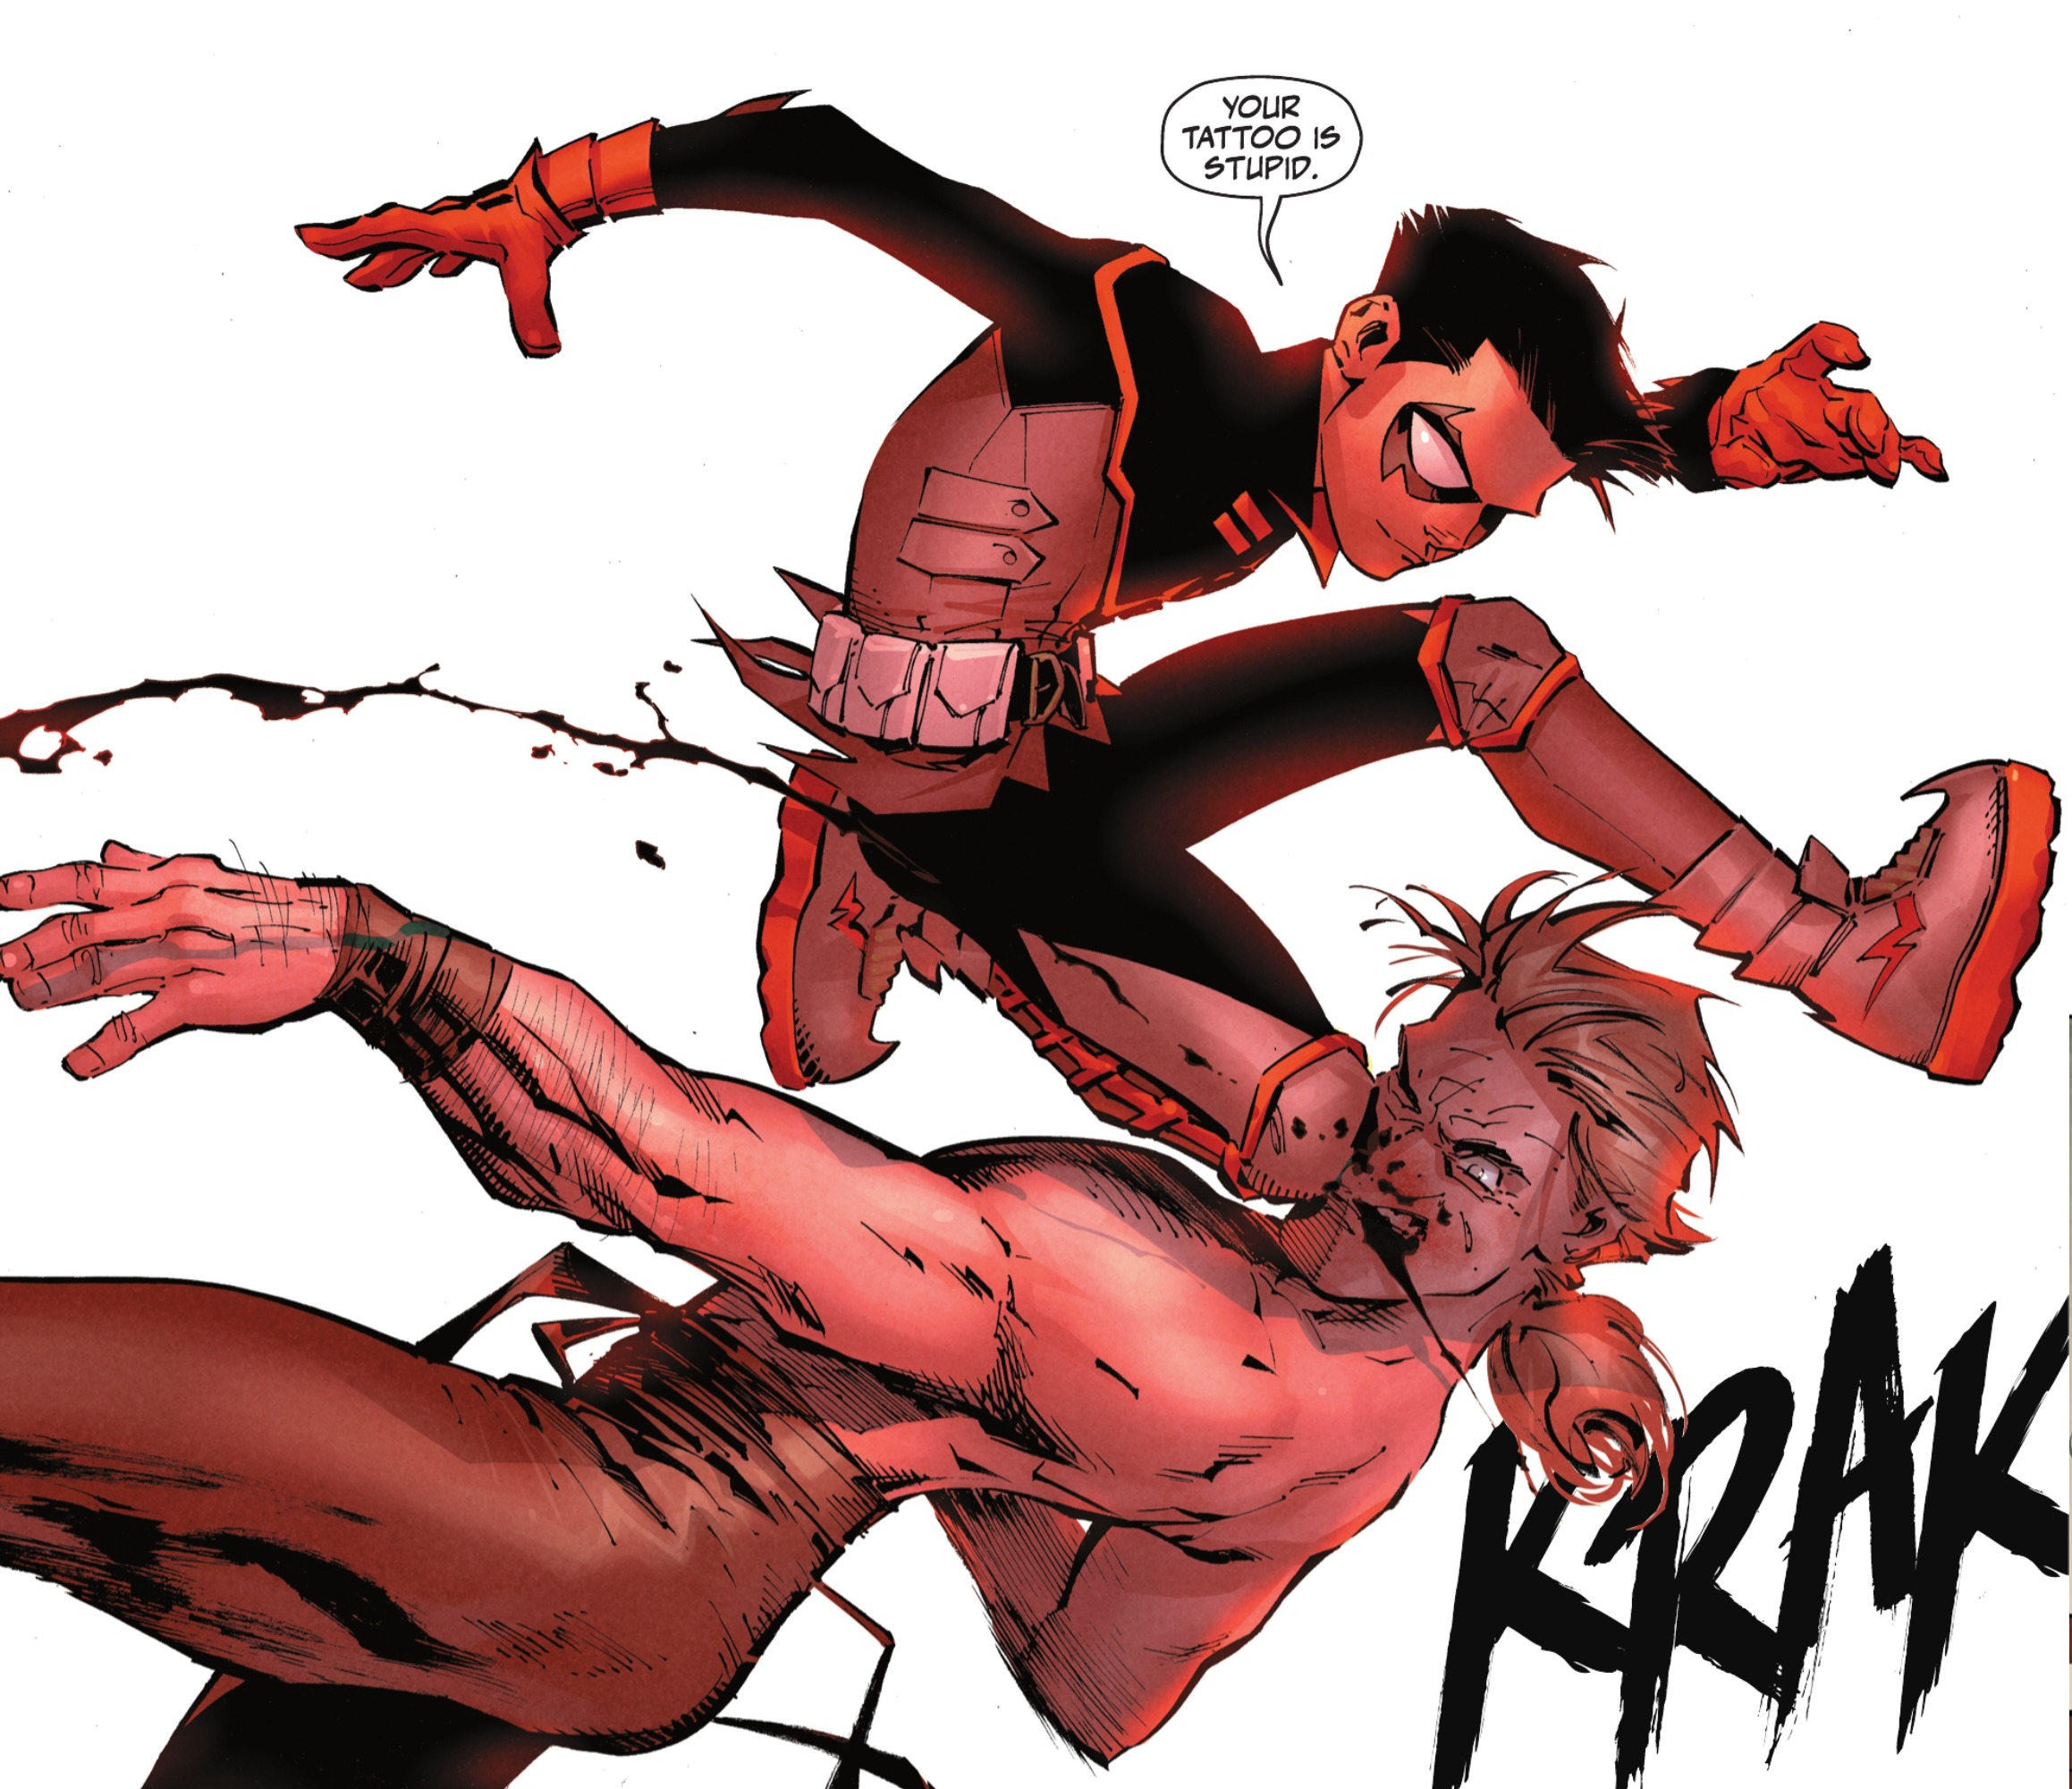 """""""Your tattoo is stupid,"""" quips Robin/Damian Wayne as he flying kicks King Snake in the face in Robin #1, DC Comics (2021)."""